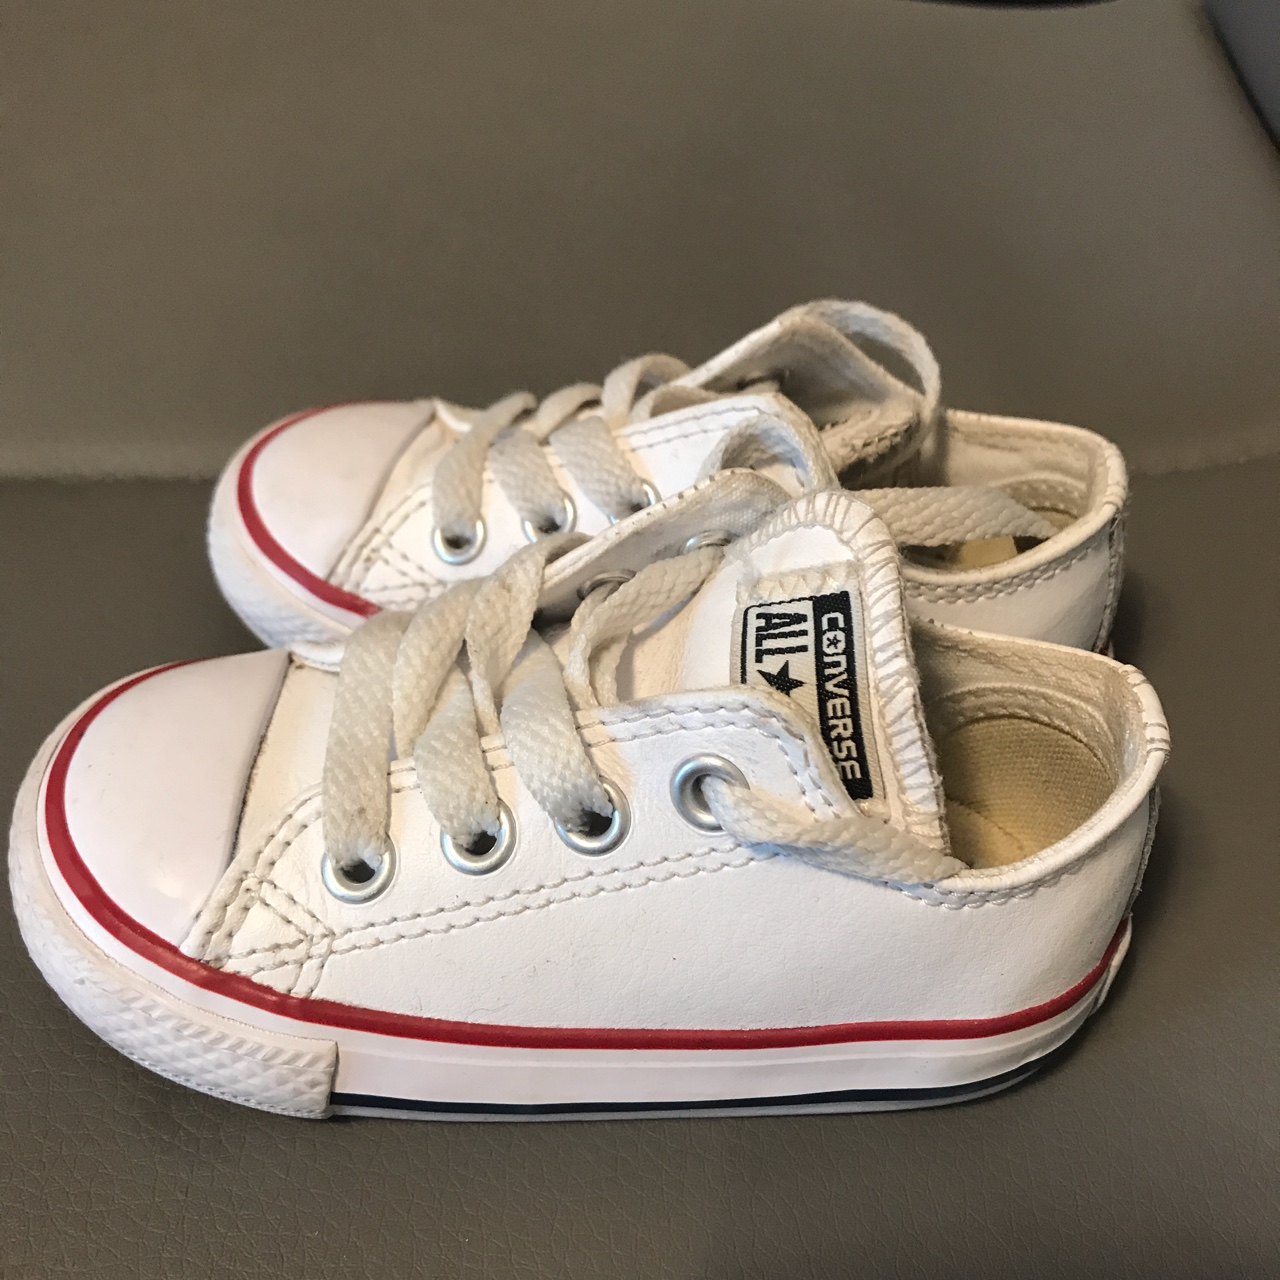 unisex leather look white converse